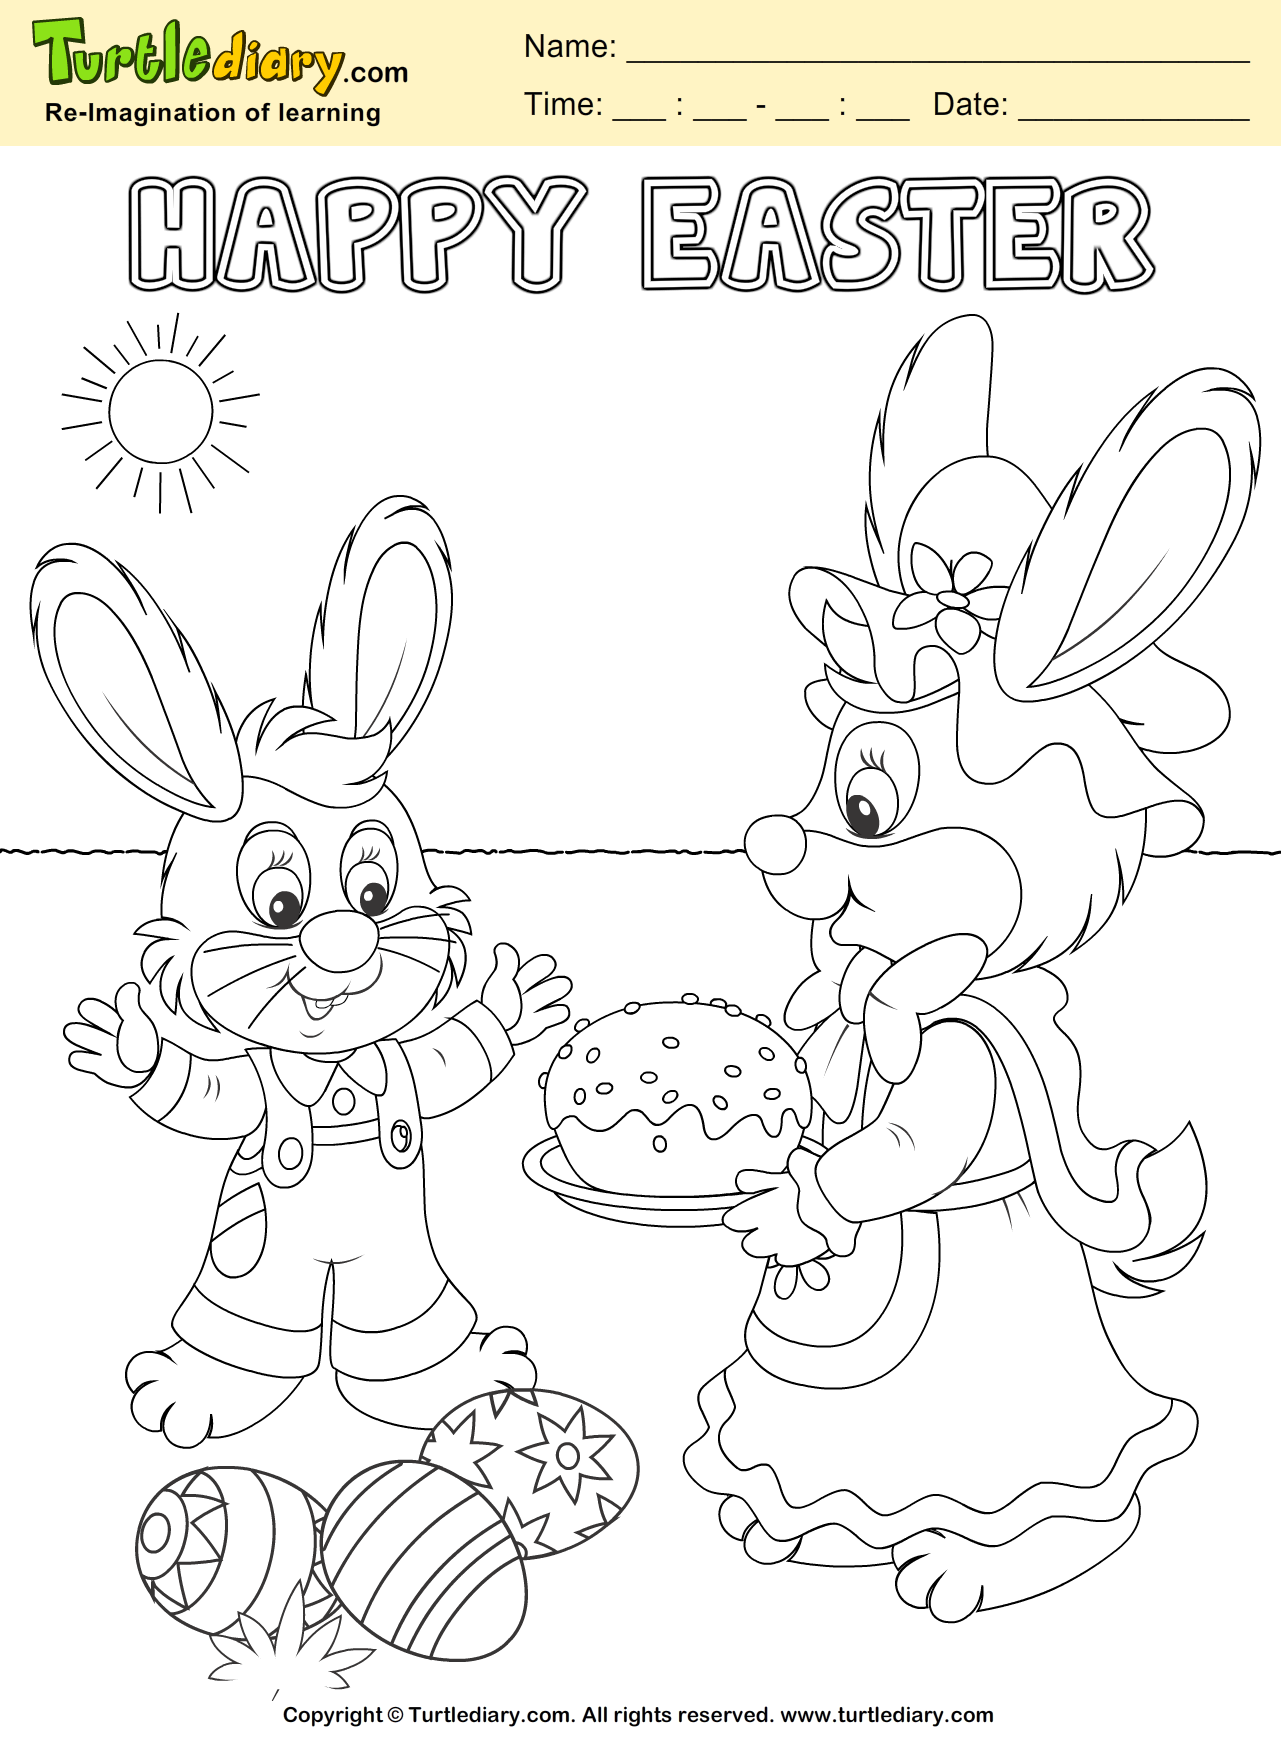 Bunny and Easter Egg Coloring Sheet Turtle Diary